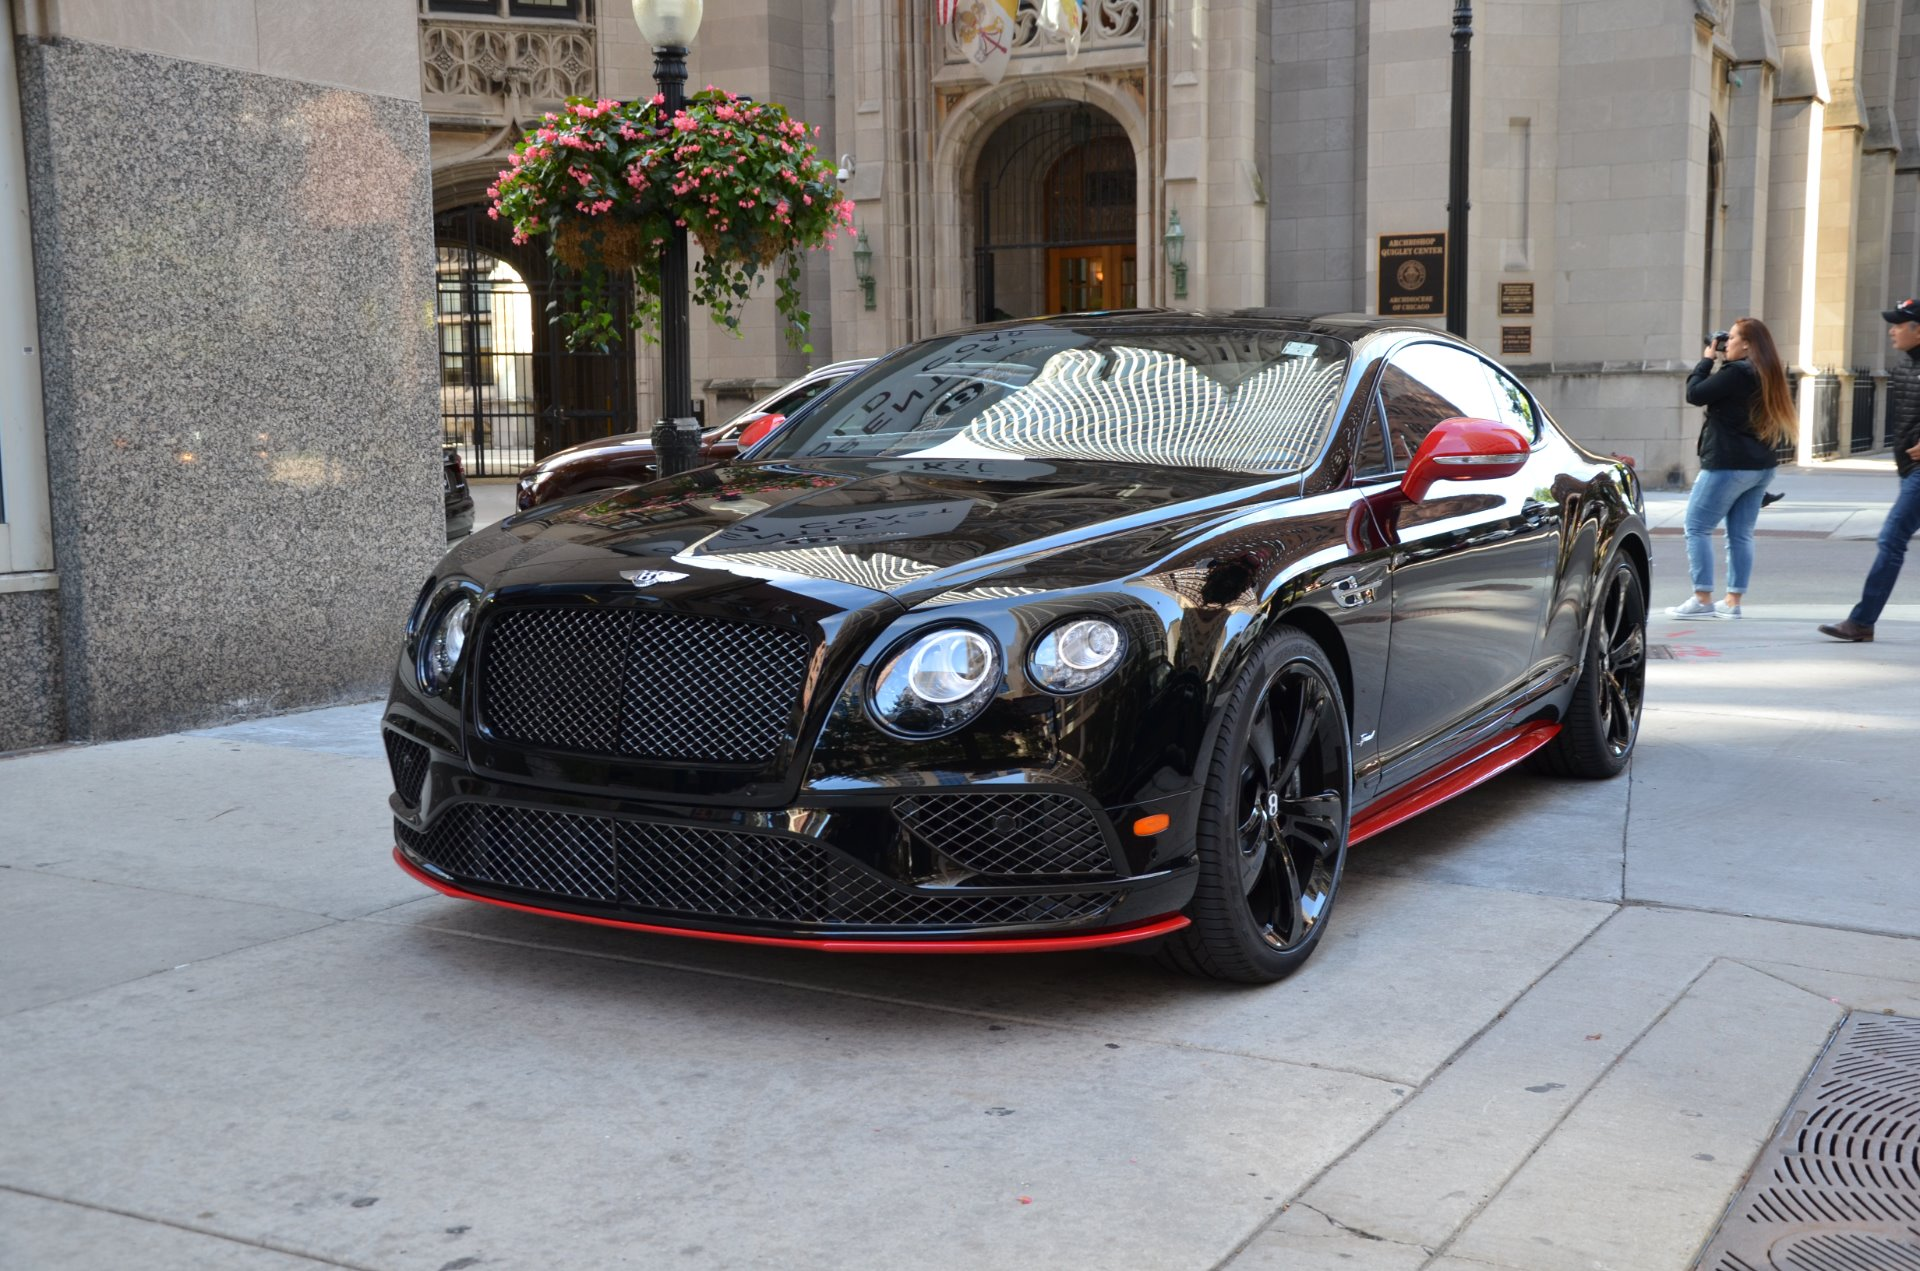 Bentley Continental For Sale >> 2017 BENTLEY CONTINENTAL GT SPEED - Luxury Pulse Cars